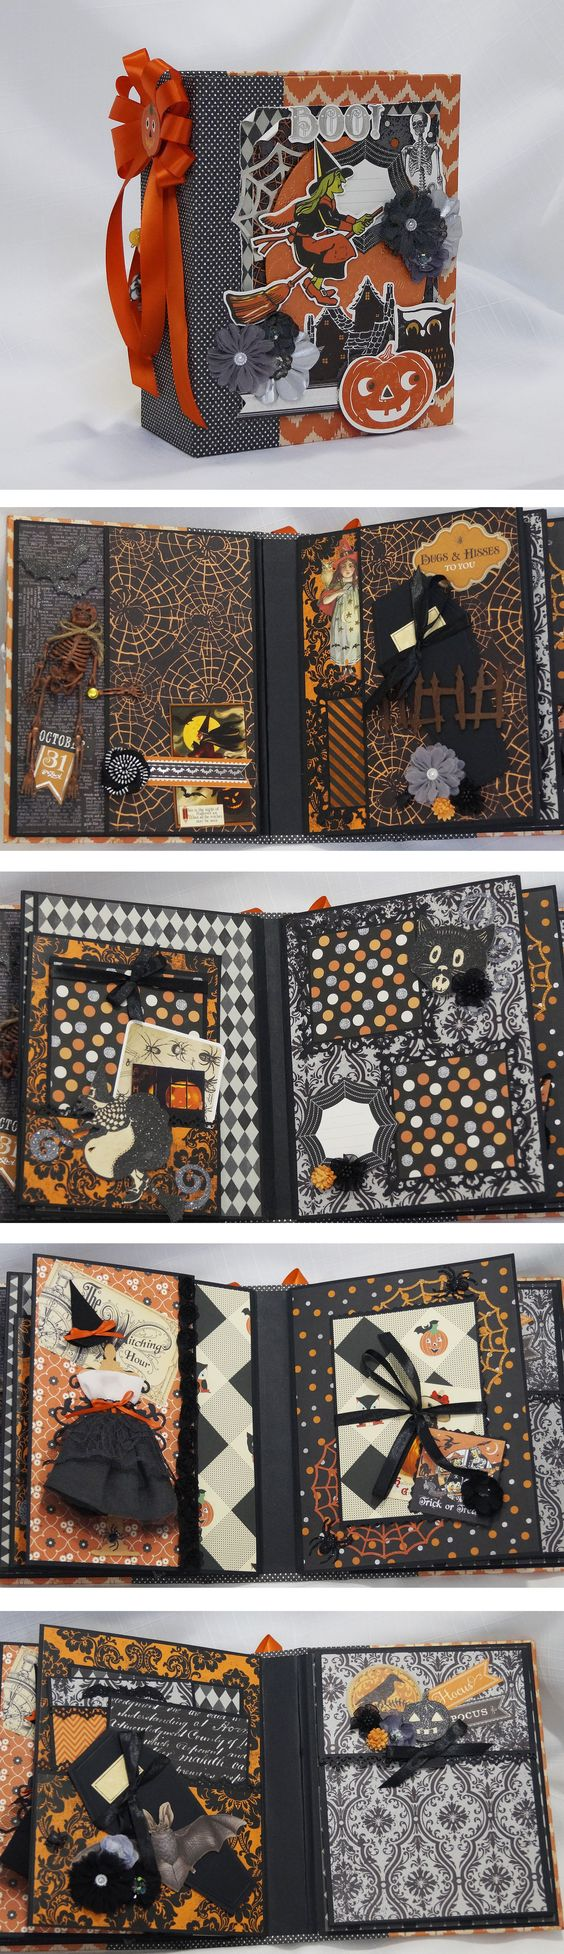 Halloween Mini album using Anna Griffin papers. by Terry's scrapbooks. https://www.youtube.com/watch?v=THxyjpF4eA4 http://www.ebay.com/itm/262027700295?ssPageName=STRK:MESELX:IT&_trksid=p3984.m1555.l2649